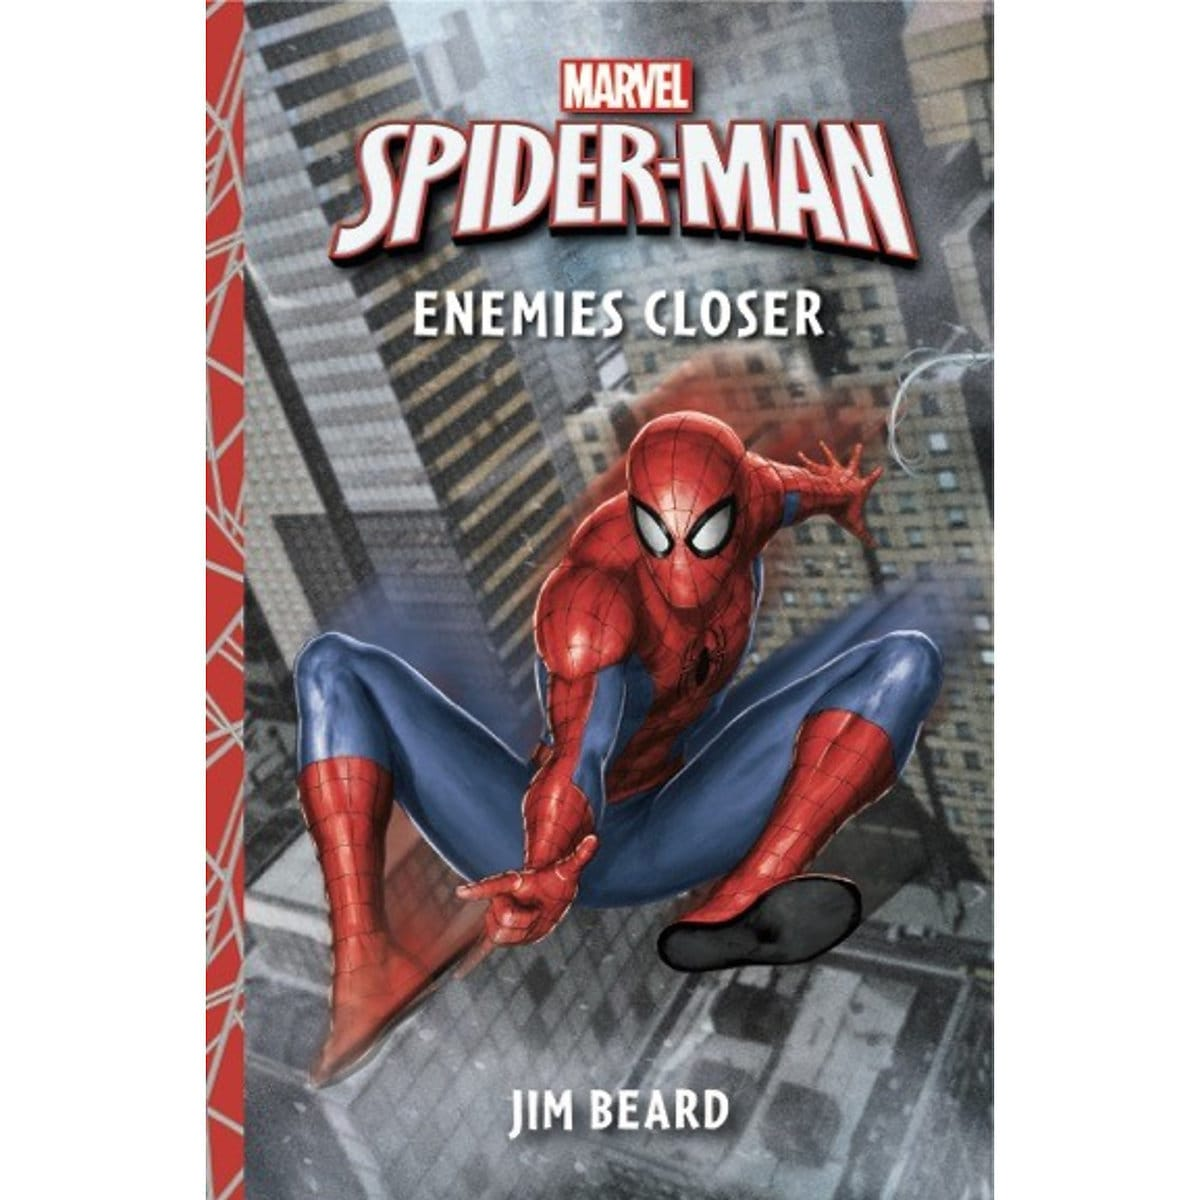 Image result for enemies closer spider-man